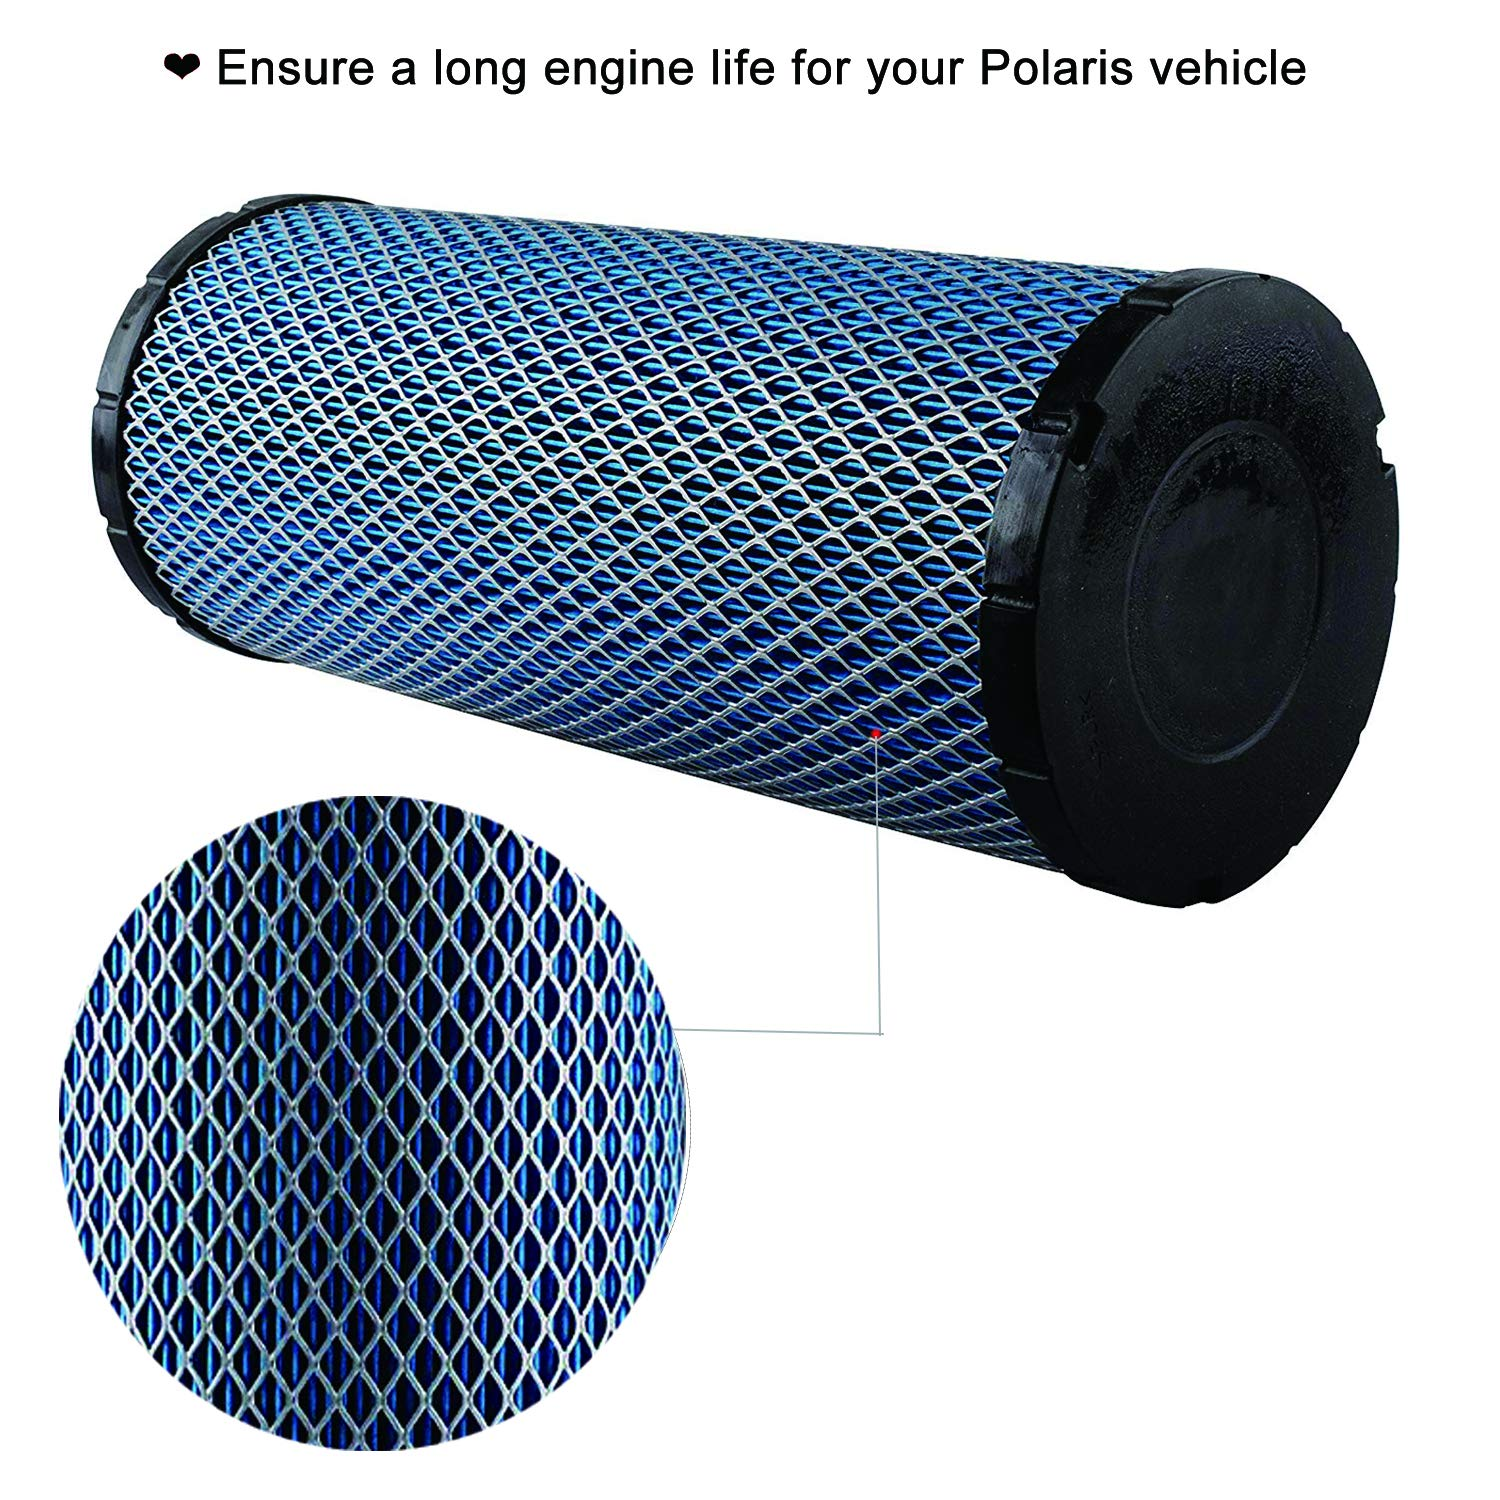 7082115 Air Filter Replacement Compatible with Polaris ACE 900, General 1000, General 4 1000, RZR 4 900, RZR 900, RZR S 1000 2015-2018 by Wddby (Image #4)